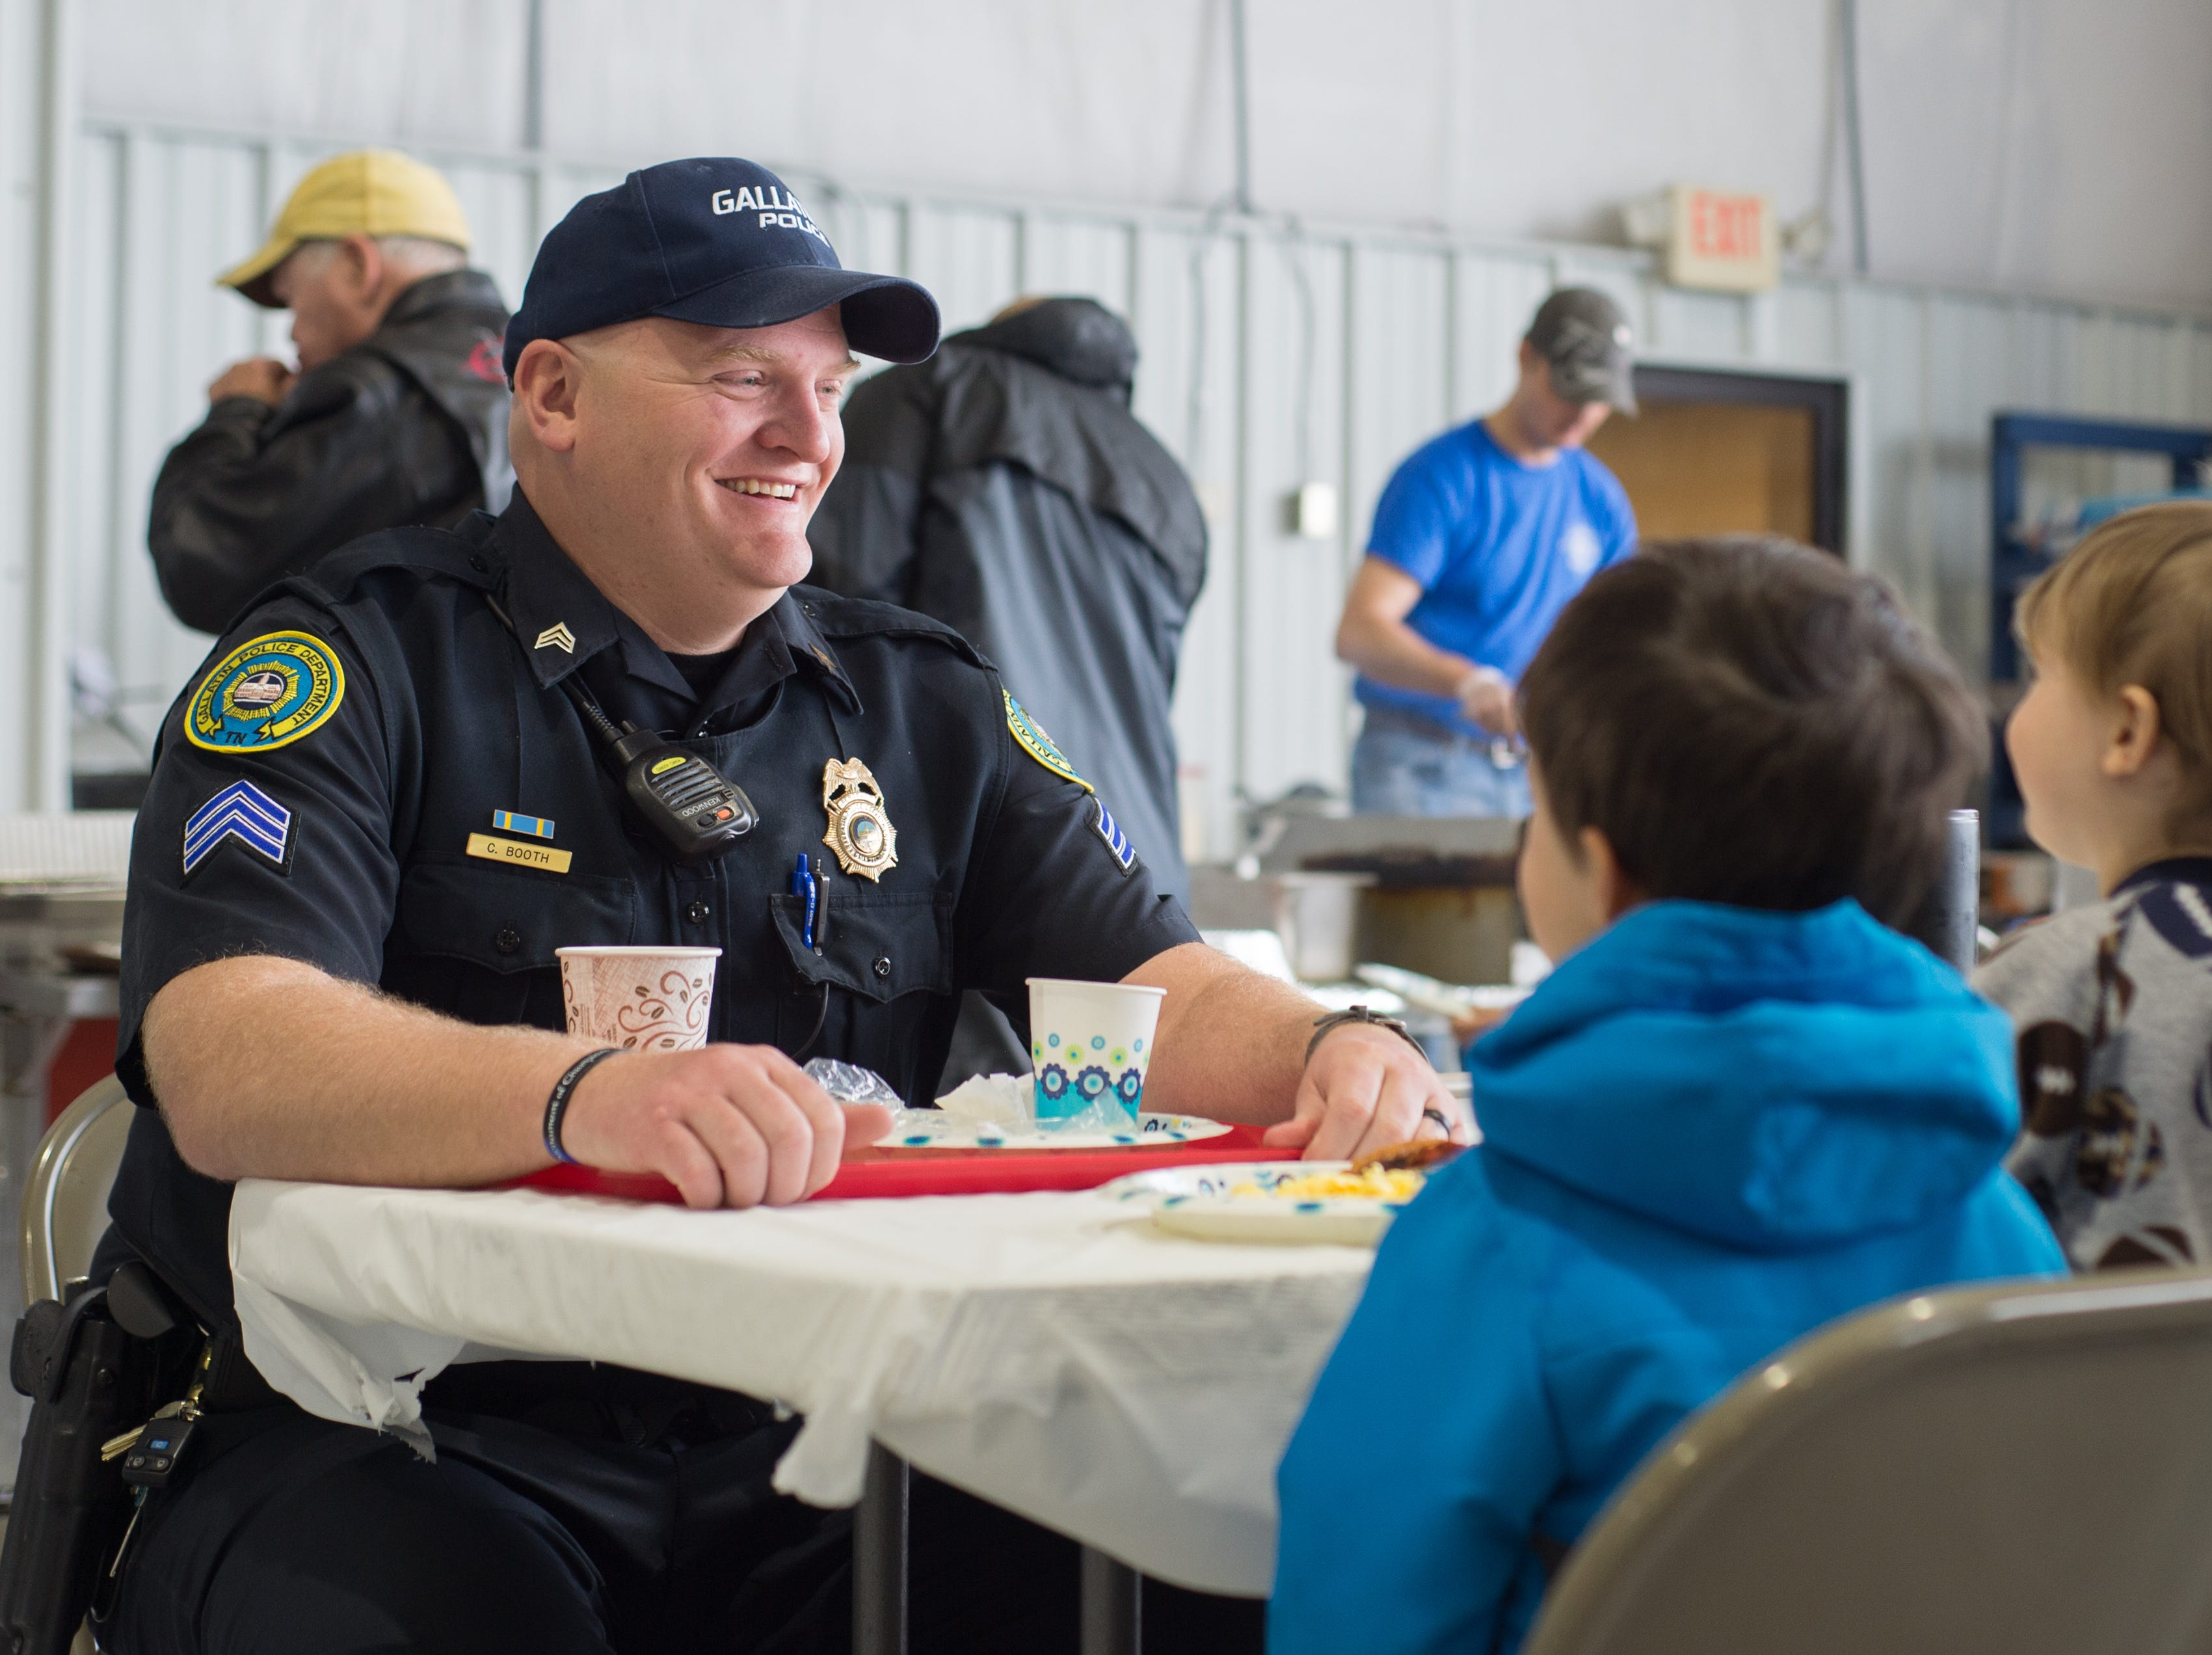 Gallatin Police Department Sergeant Booth has some fun during a Fly-In Breakfast at the Sumner County Regional Airport in Gallatin on Saturday, April 13.